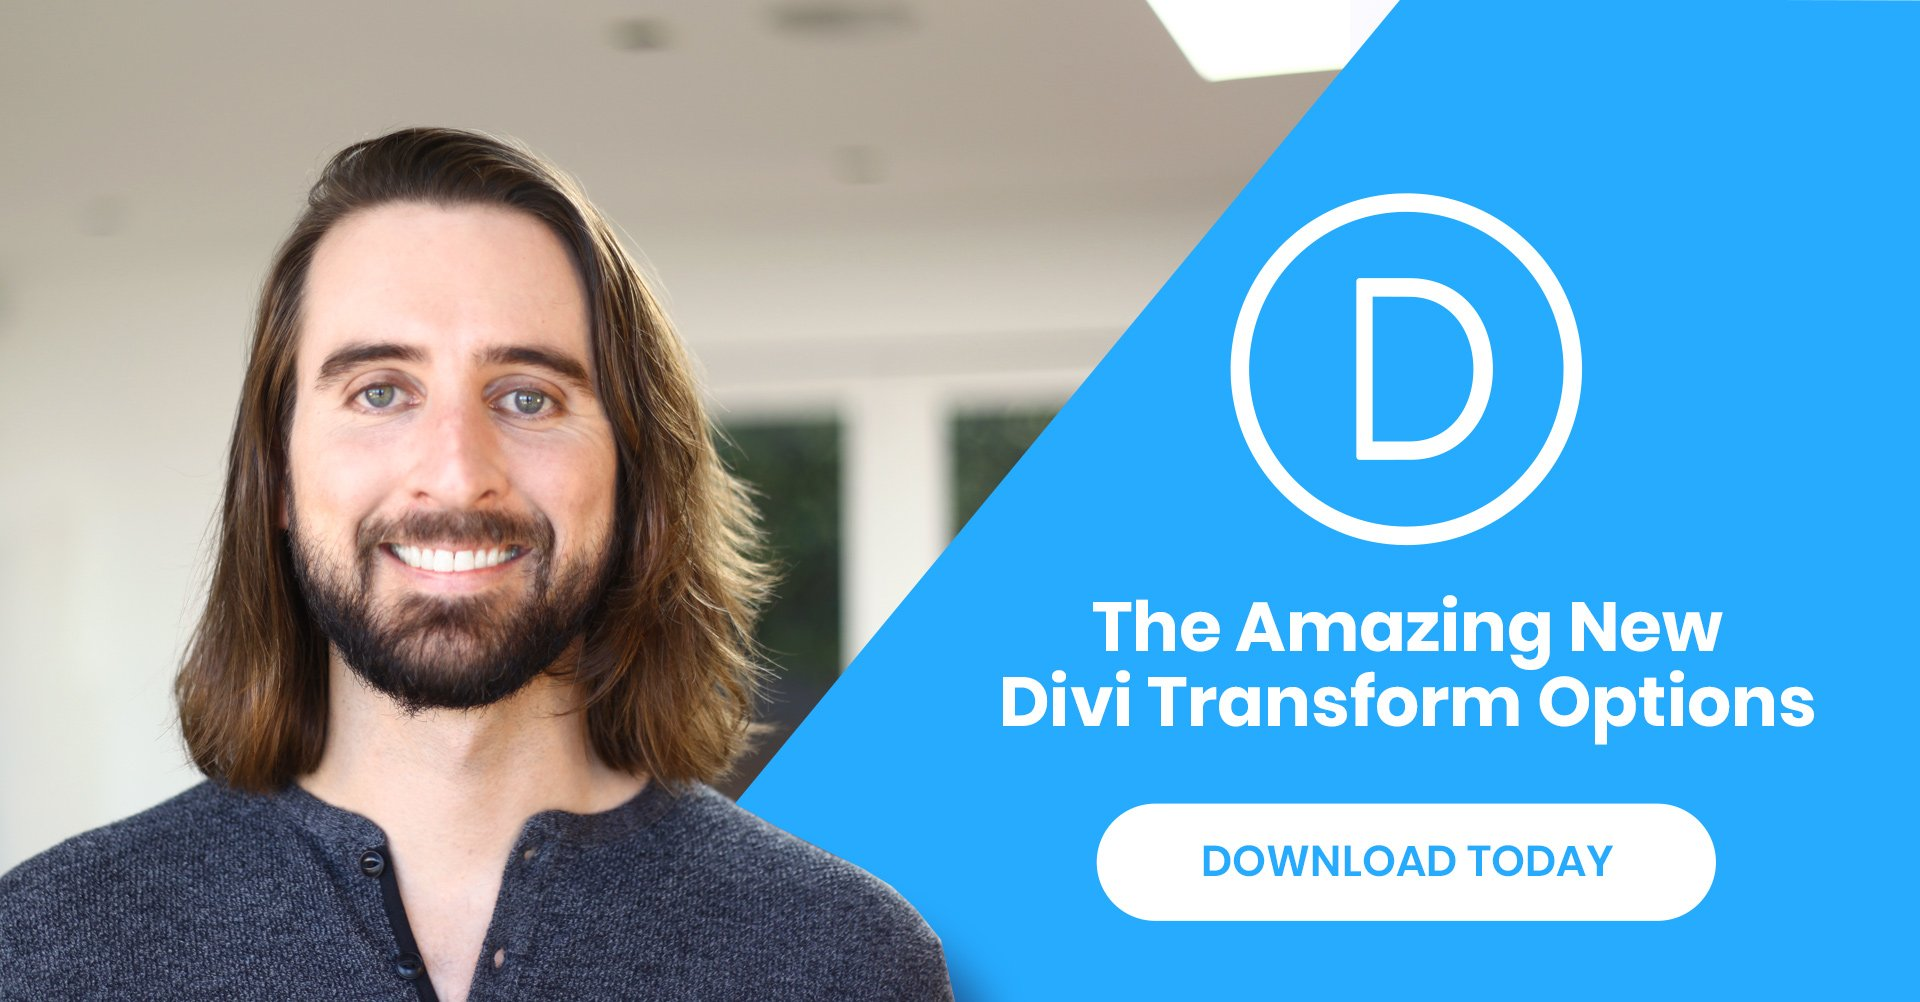 The Amazing New Divi Transformation Controls!